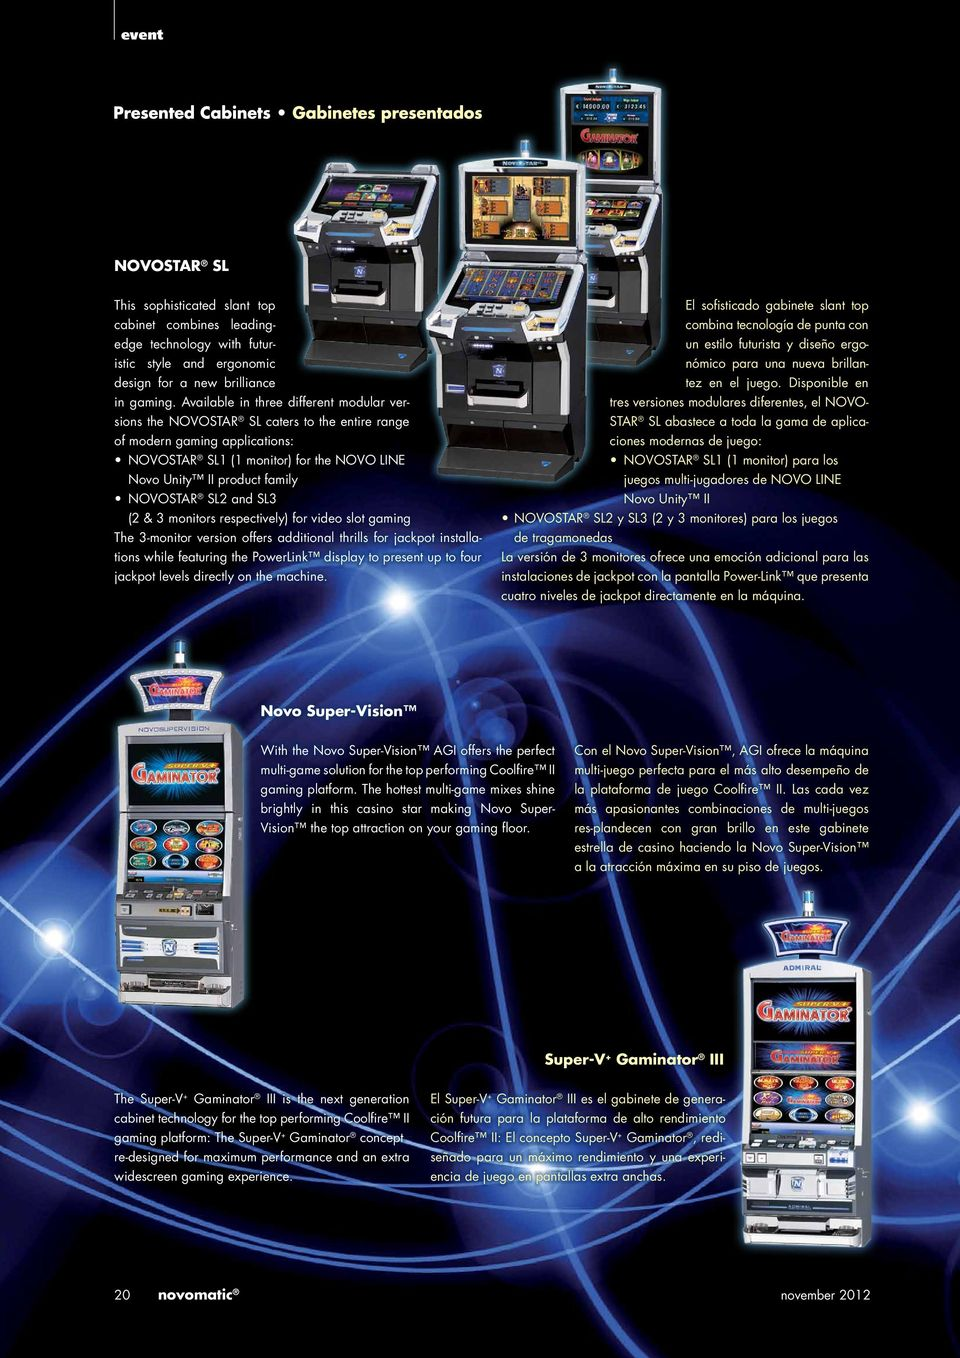 NOVOSTAR SL2 and SL3 (2 & 3 monitors respectively) for video slot gaming The 3-monitor version offers additional thrills for jackpot installations while featuring the PowerLink display to present up